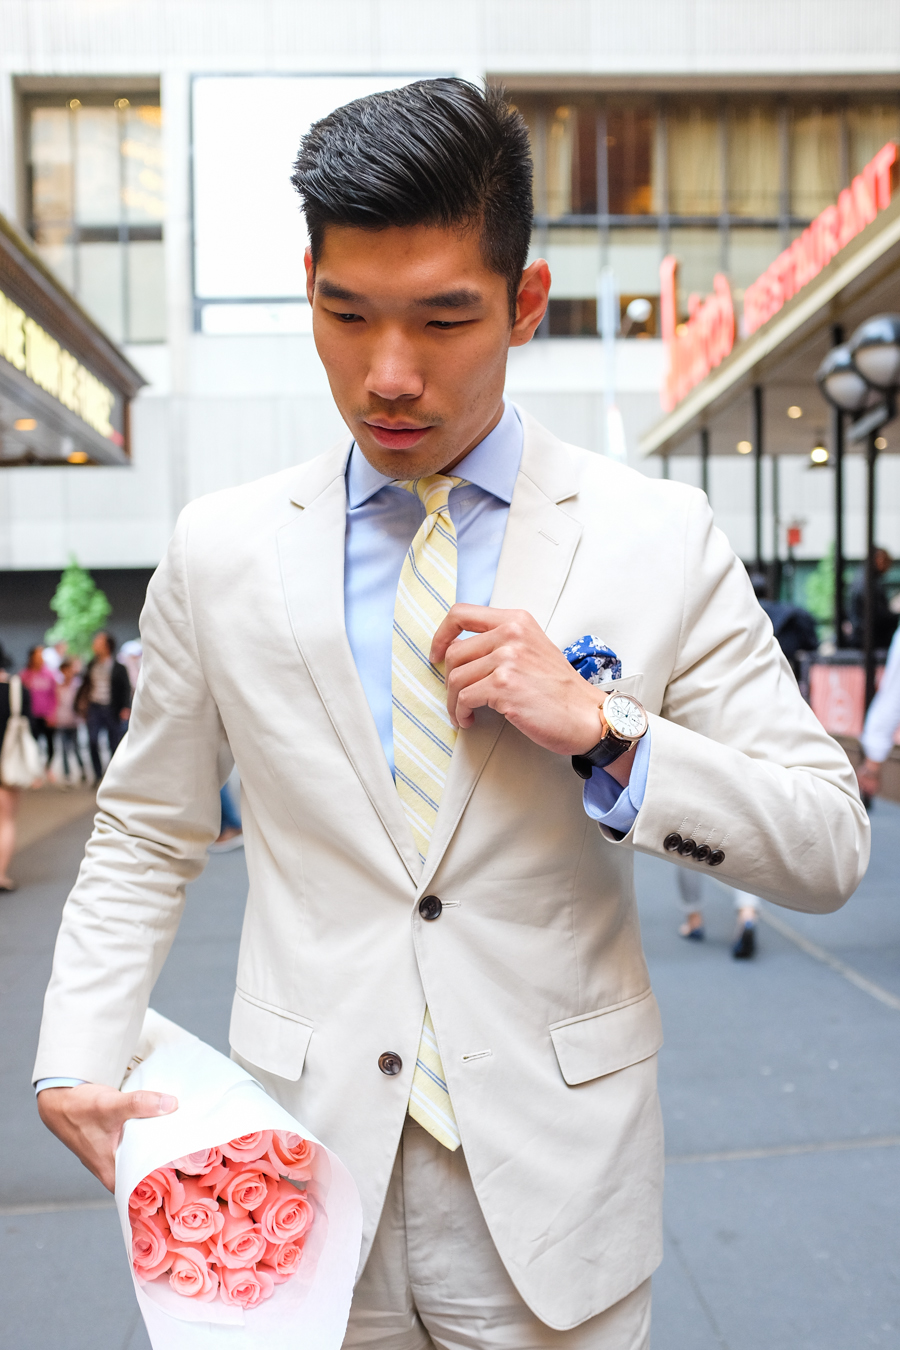 Levitate Style | Summer Bonobos Cotton Suit, SprezzaBox